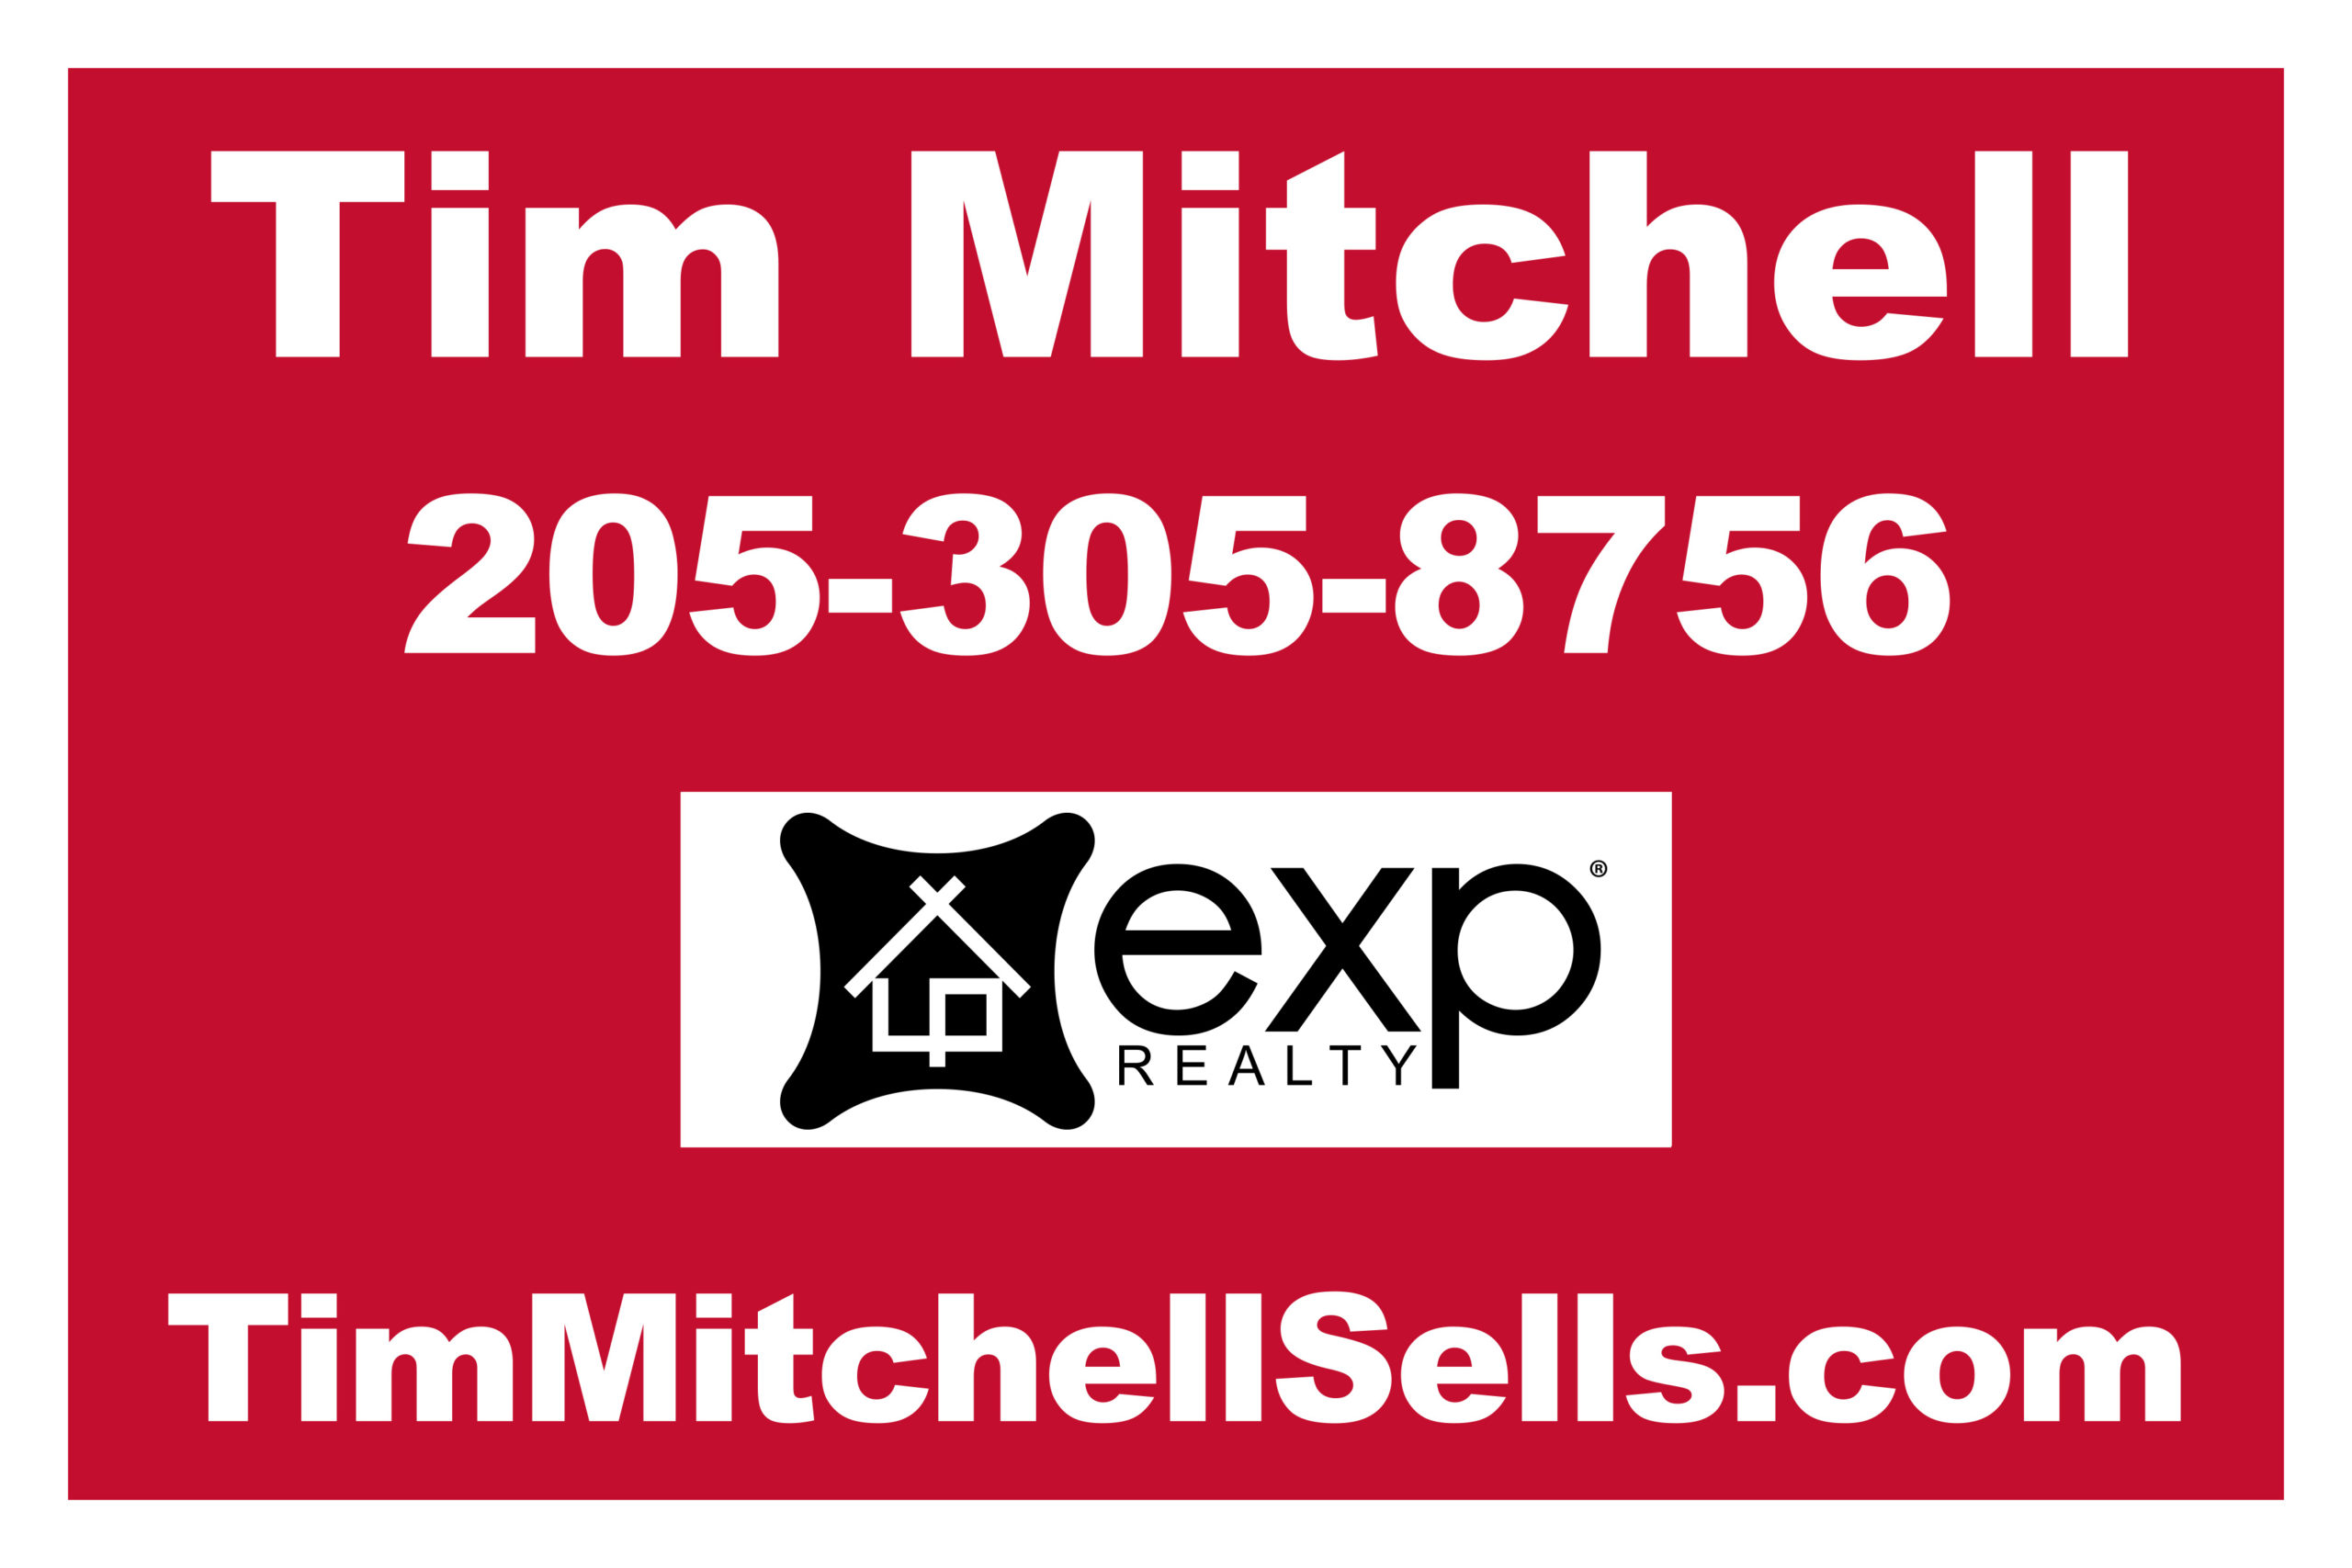 tim mitchell exp realty